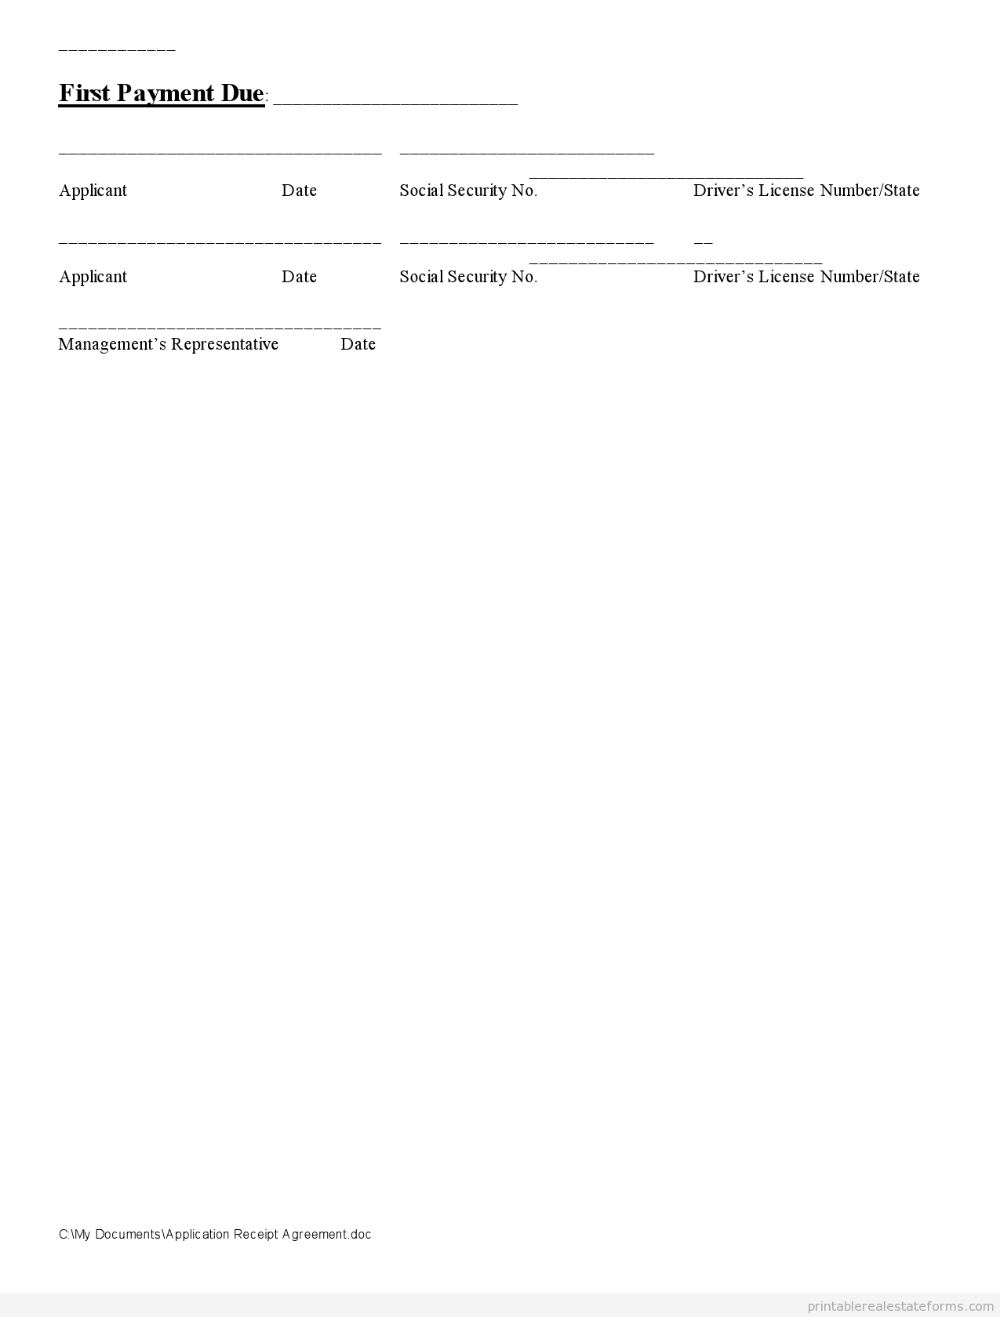 Free Printable Application Receipt Agreement Form Pdf In 2020 Word Template Real Estate Forms Templates